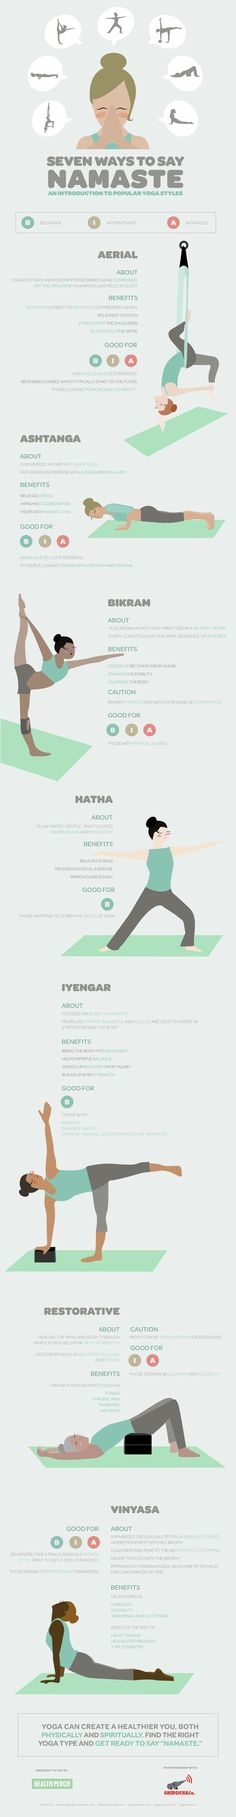 "7 ways to say ""Namaste"": an infographic intro to popular yoga styles"